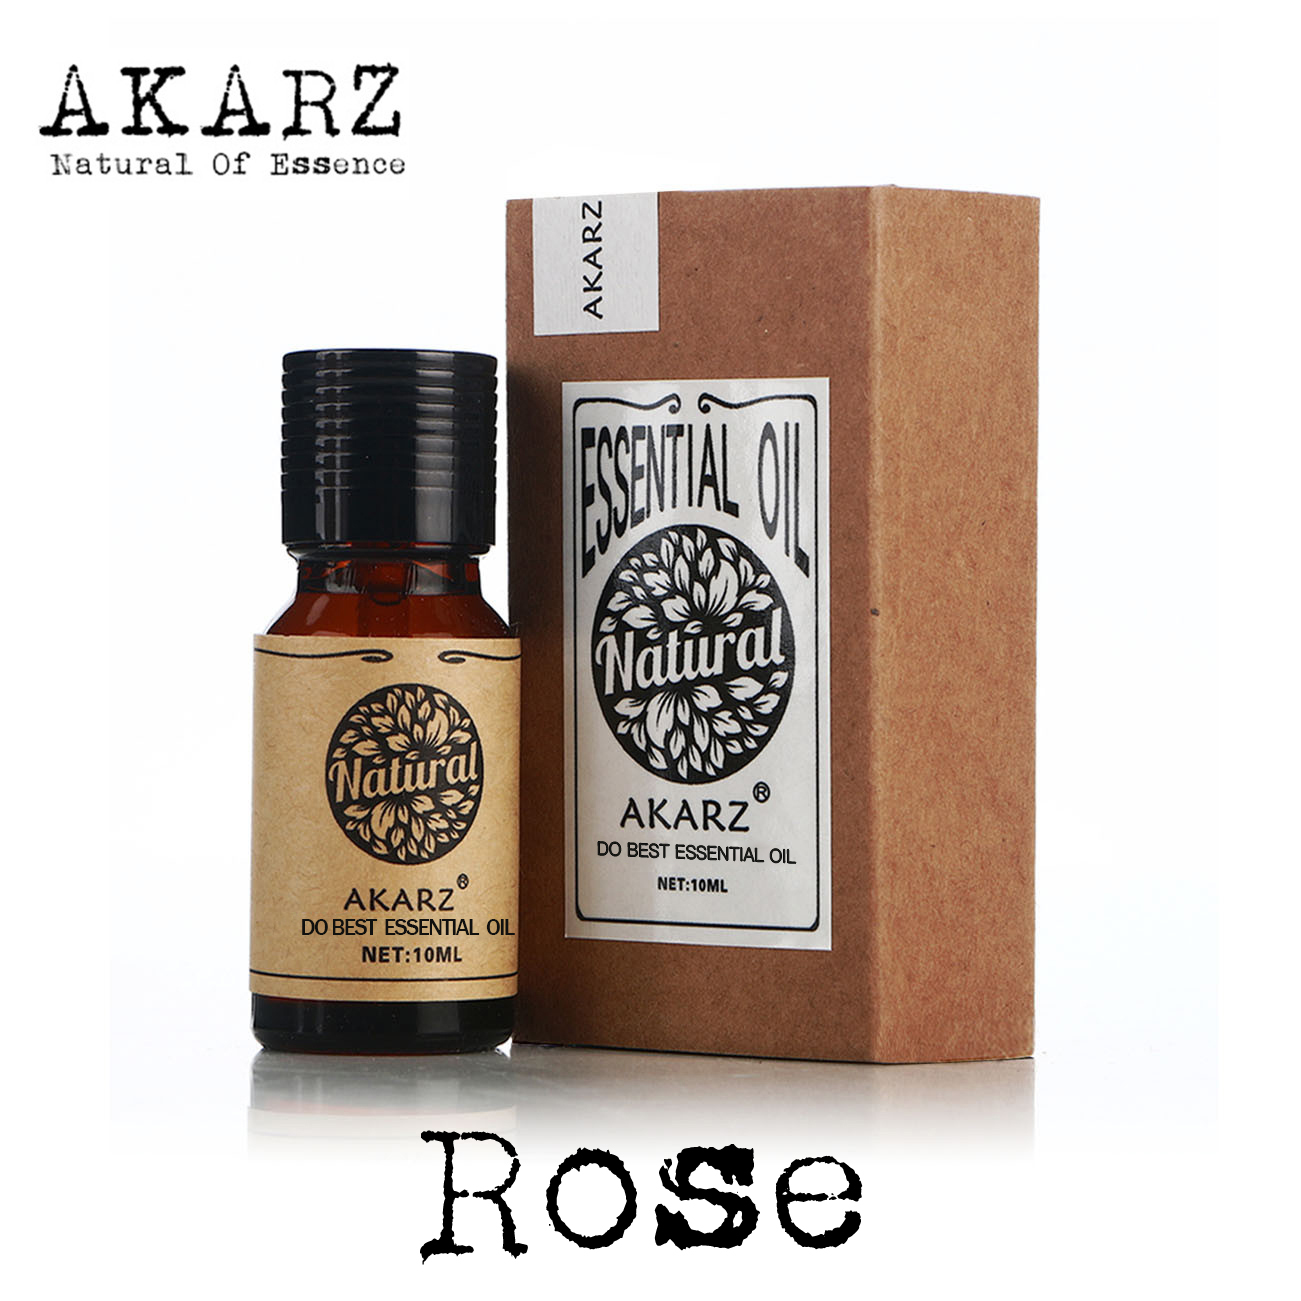 Rose Essential Oil AKARZ Famous Brand Natural Oiliness Cosmetics Candle Soap Scents Making DIY Odorant Raw Material Rose Oil